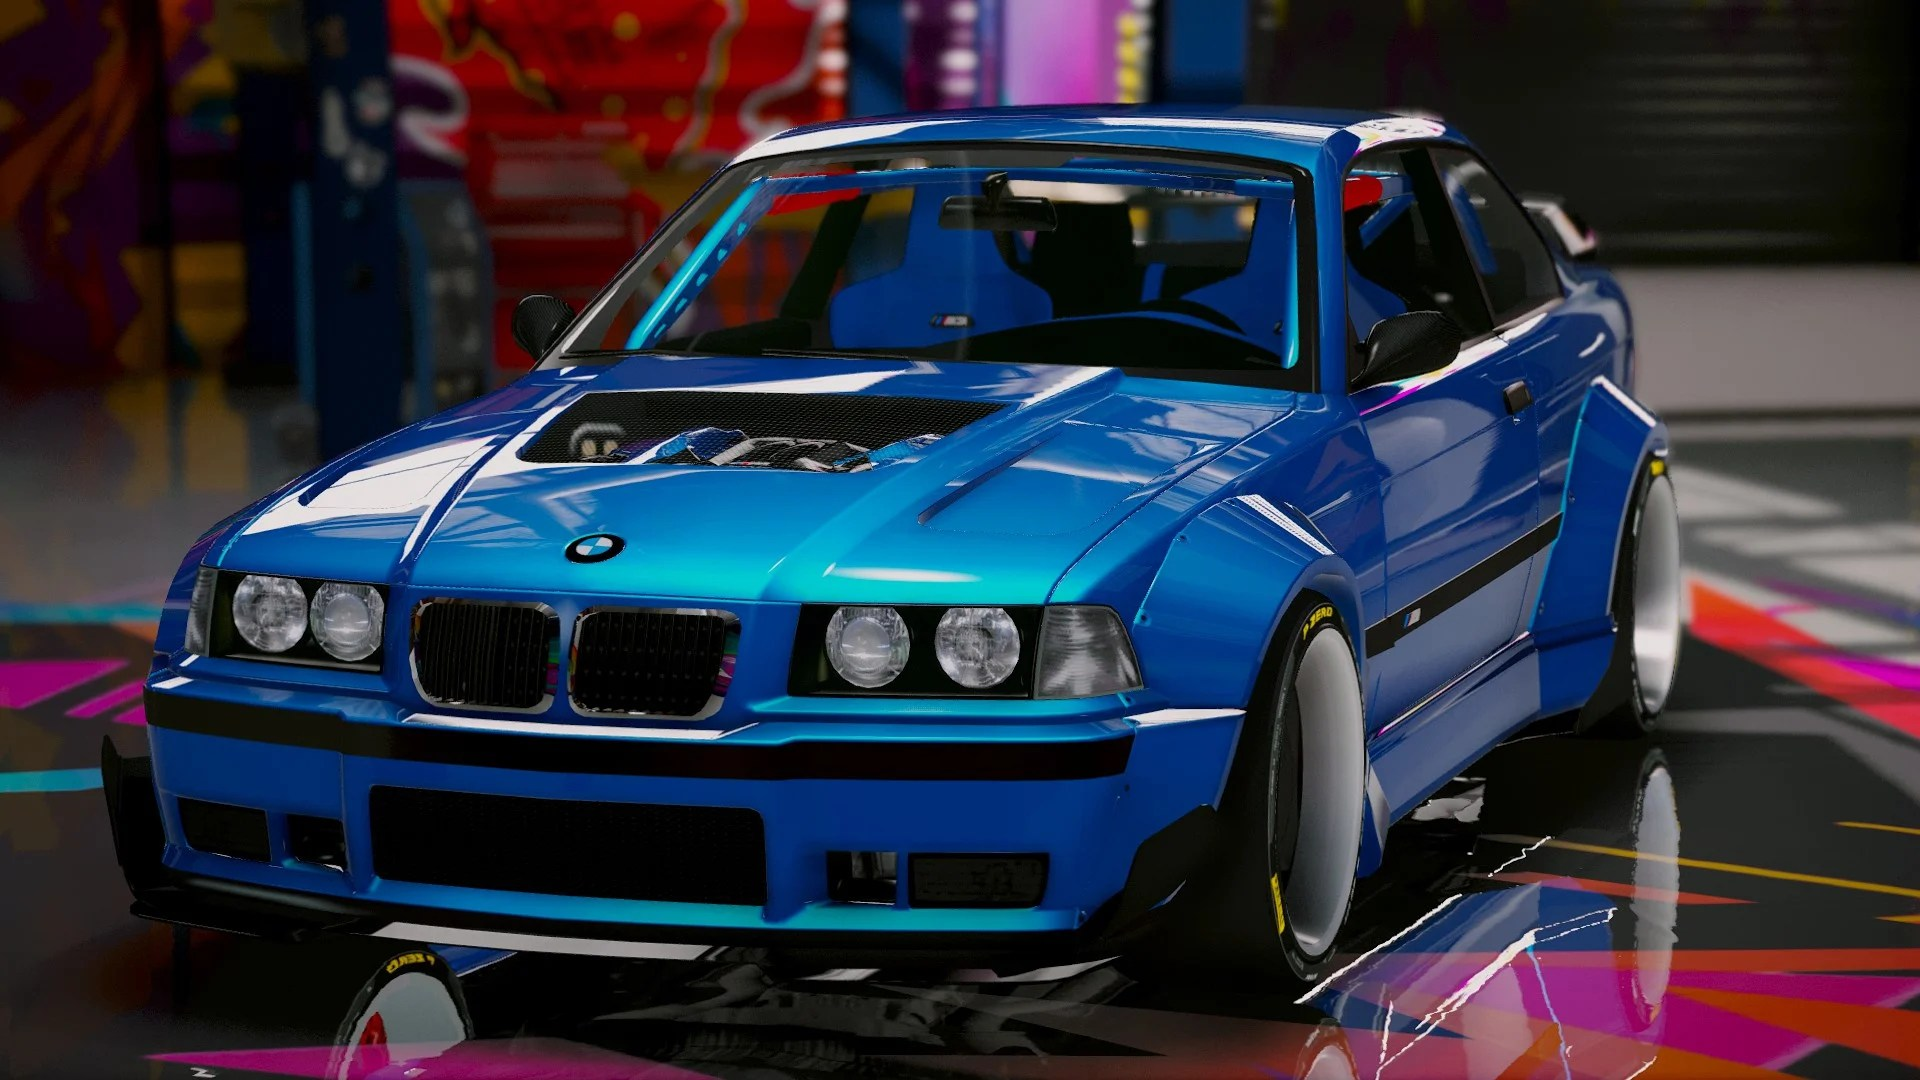 Bmw M3 E36 Rocket Bunny Add On Tuning Gta5 Mods Com Pictures Cityconnectapps